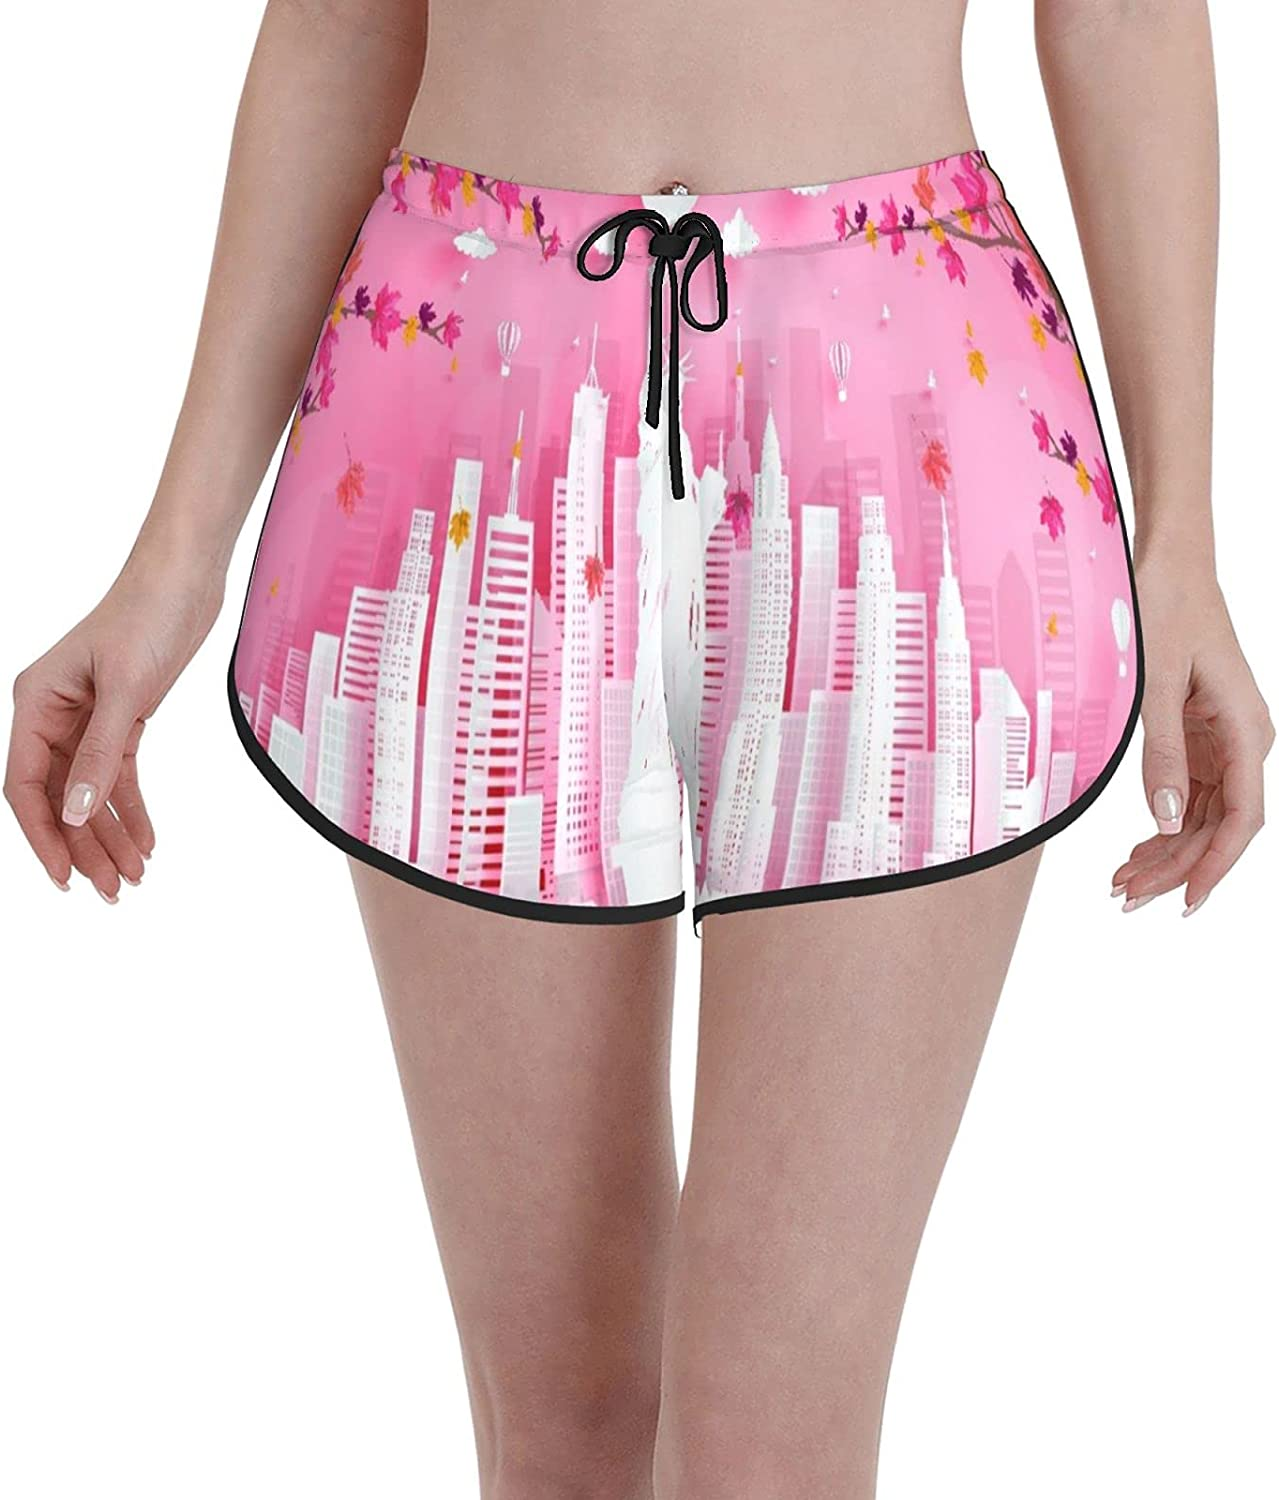 Janrely Casual Board Shorts for Mail order Women Trunks Girls We All stores are sold Beach Swim